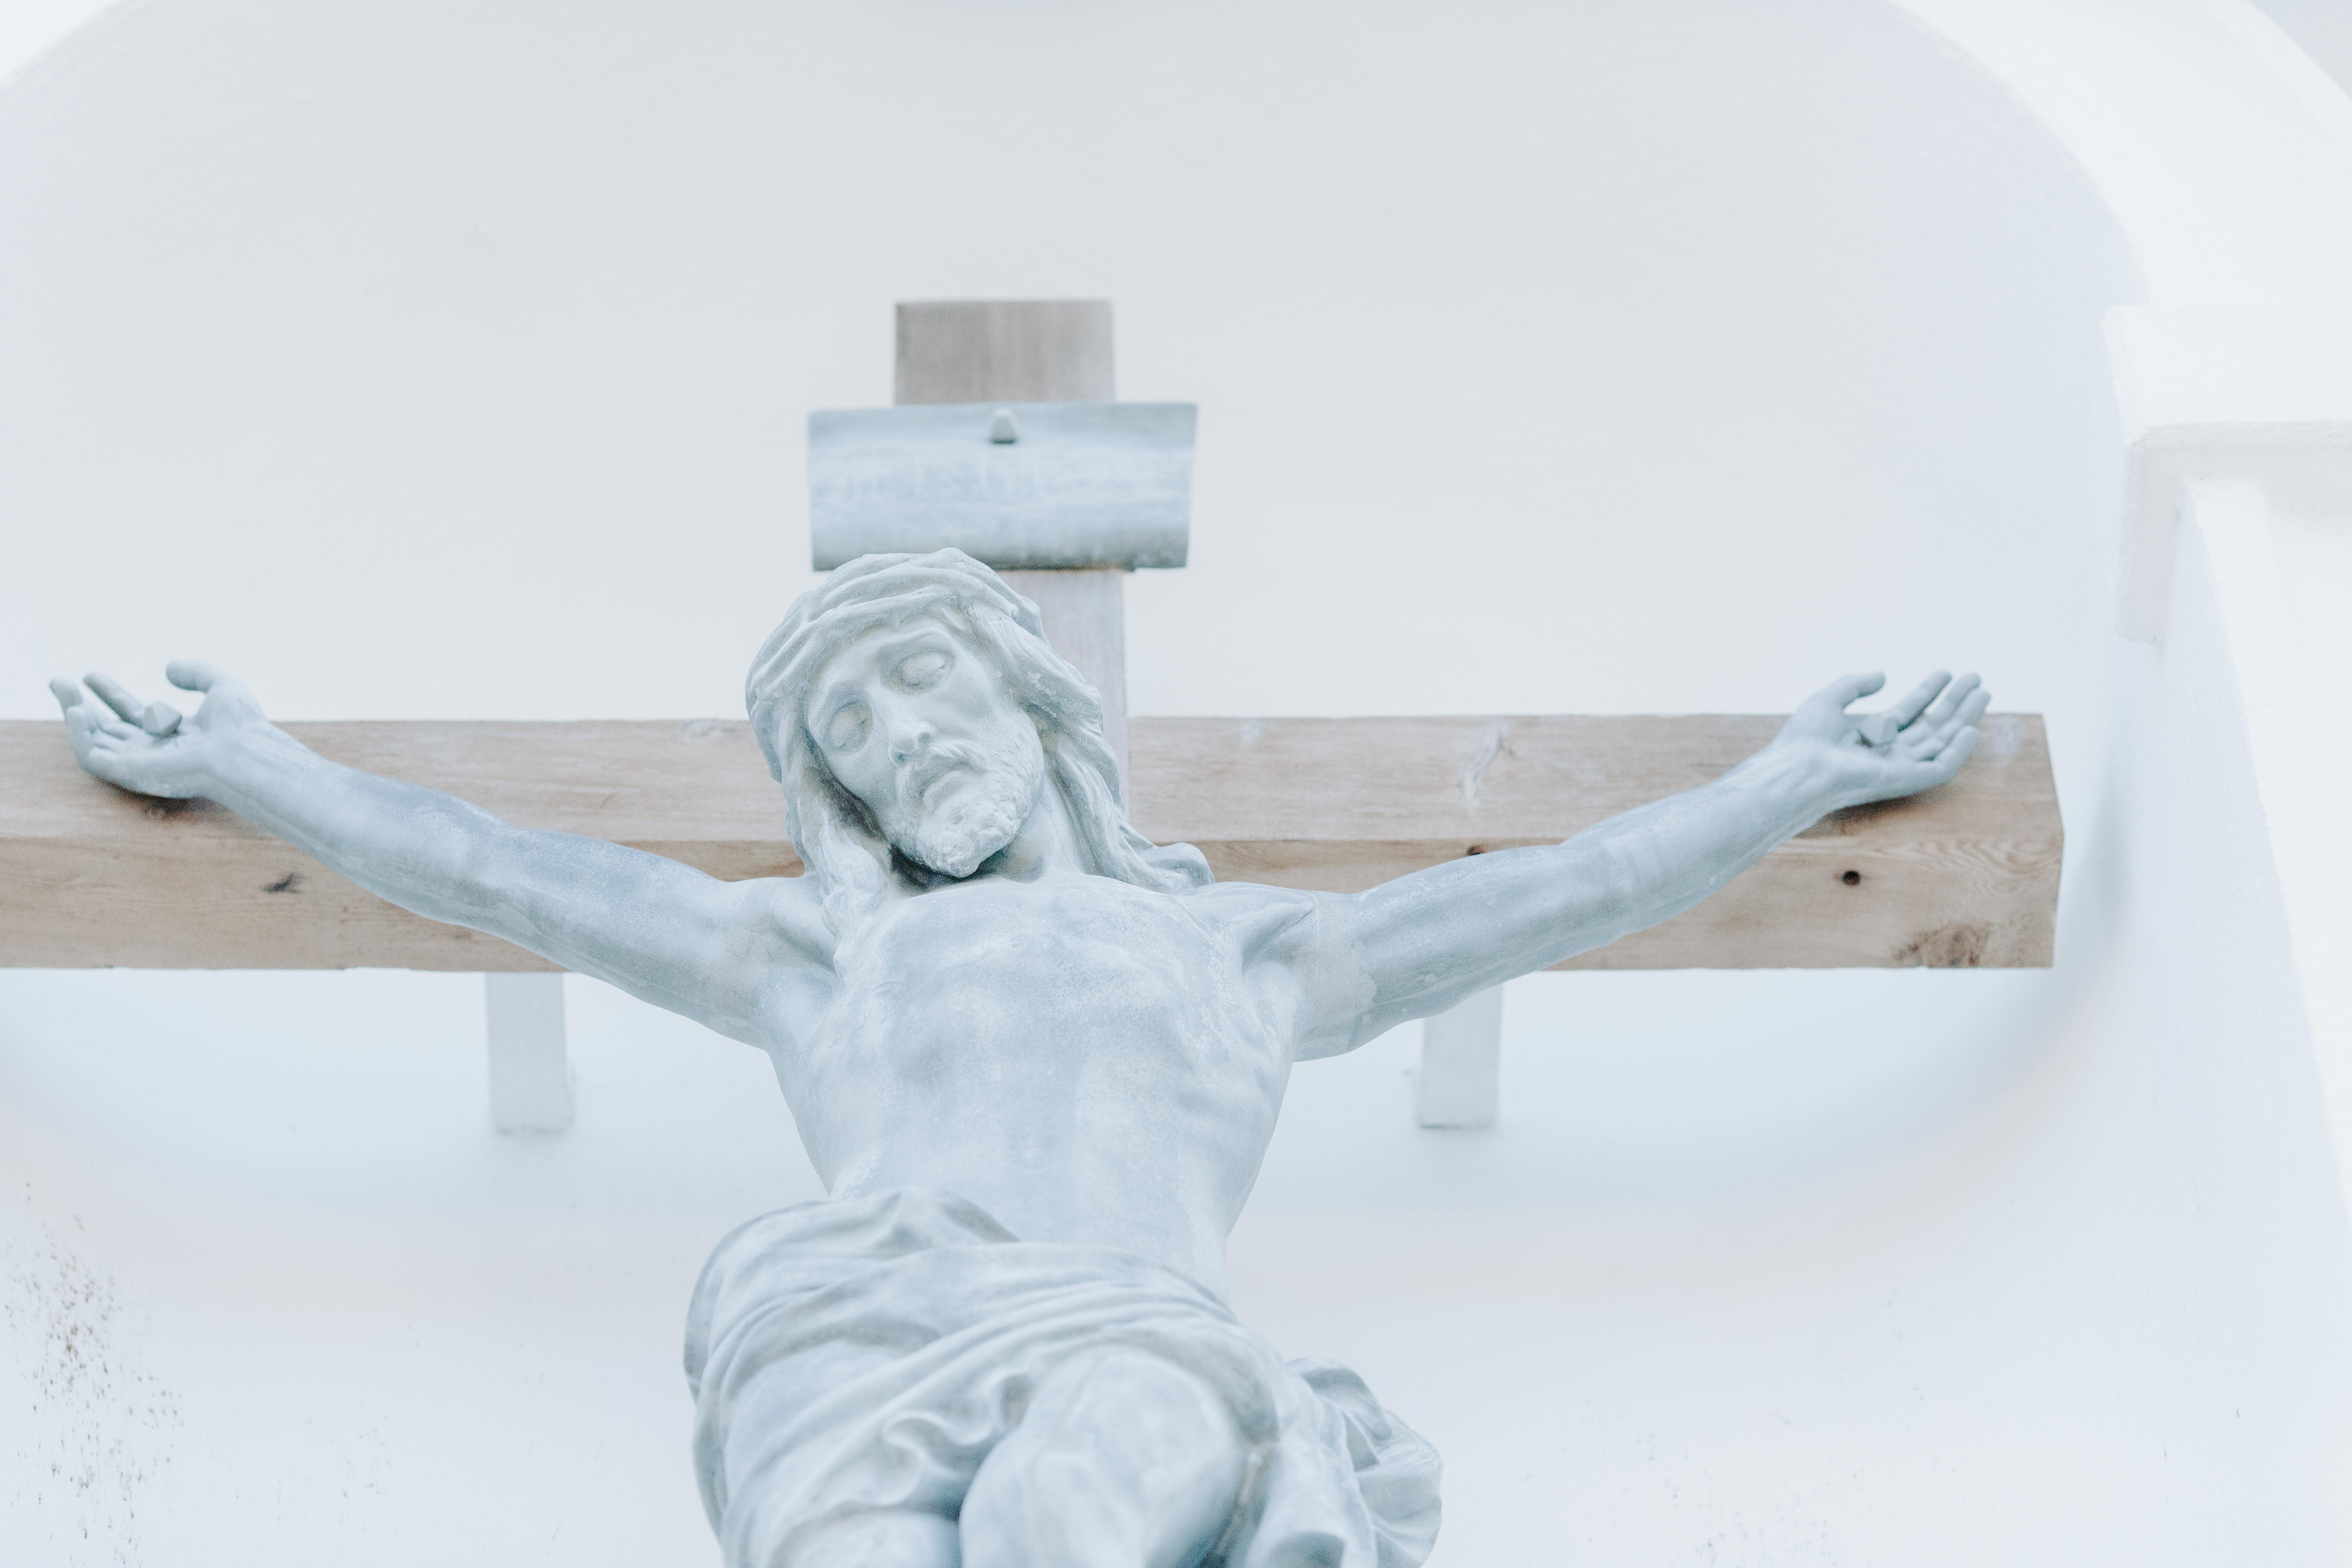 low angle photography of crucifix